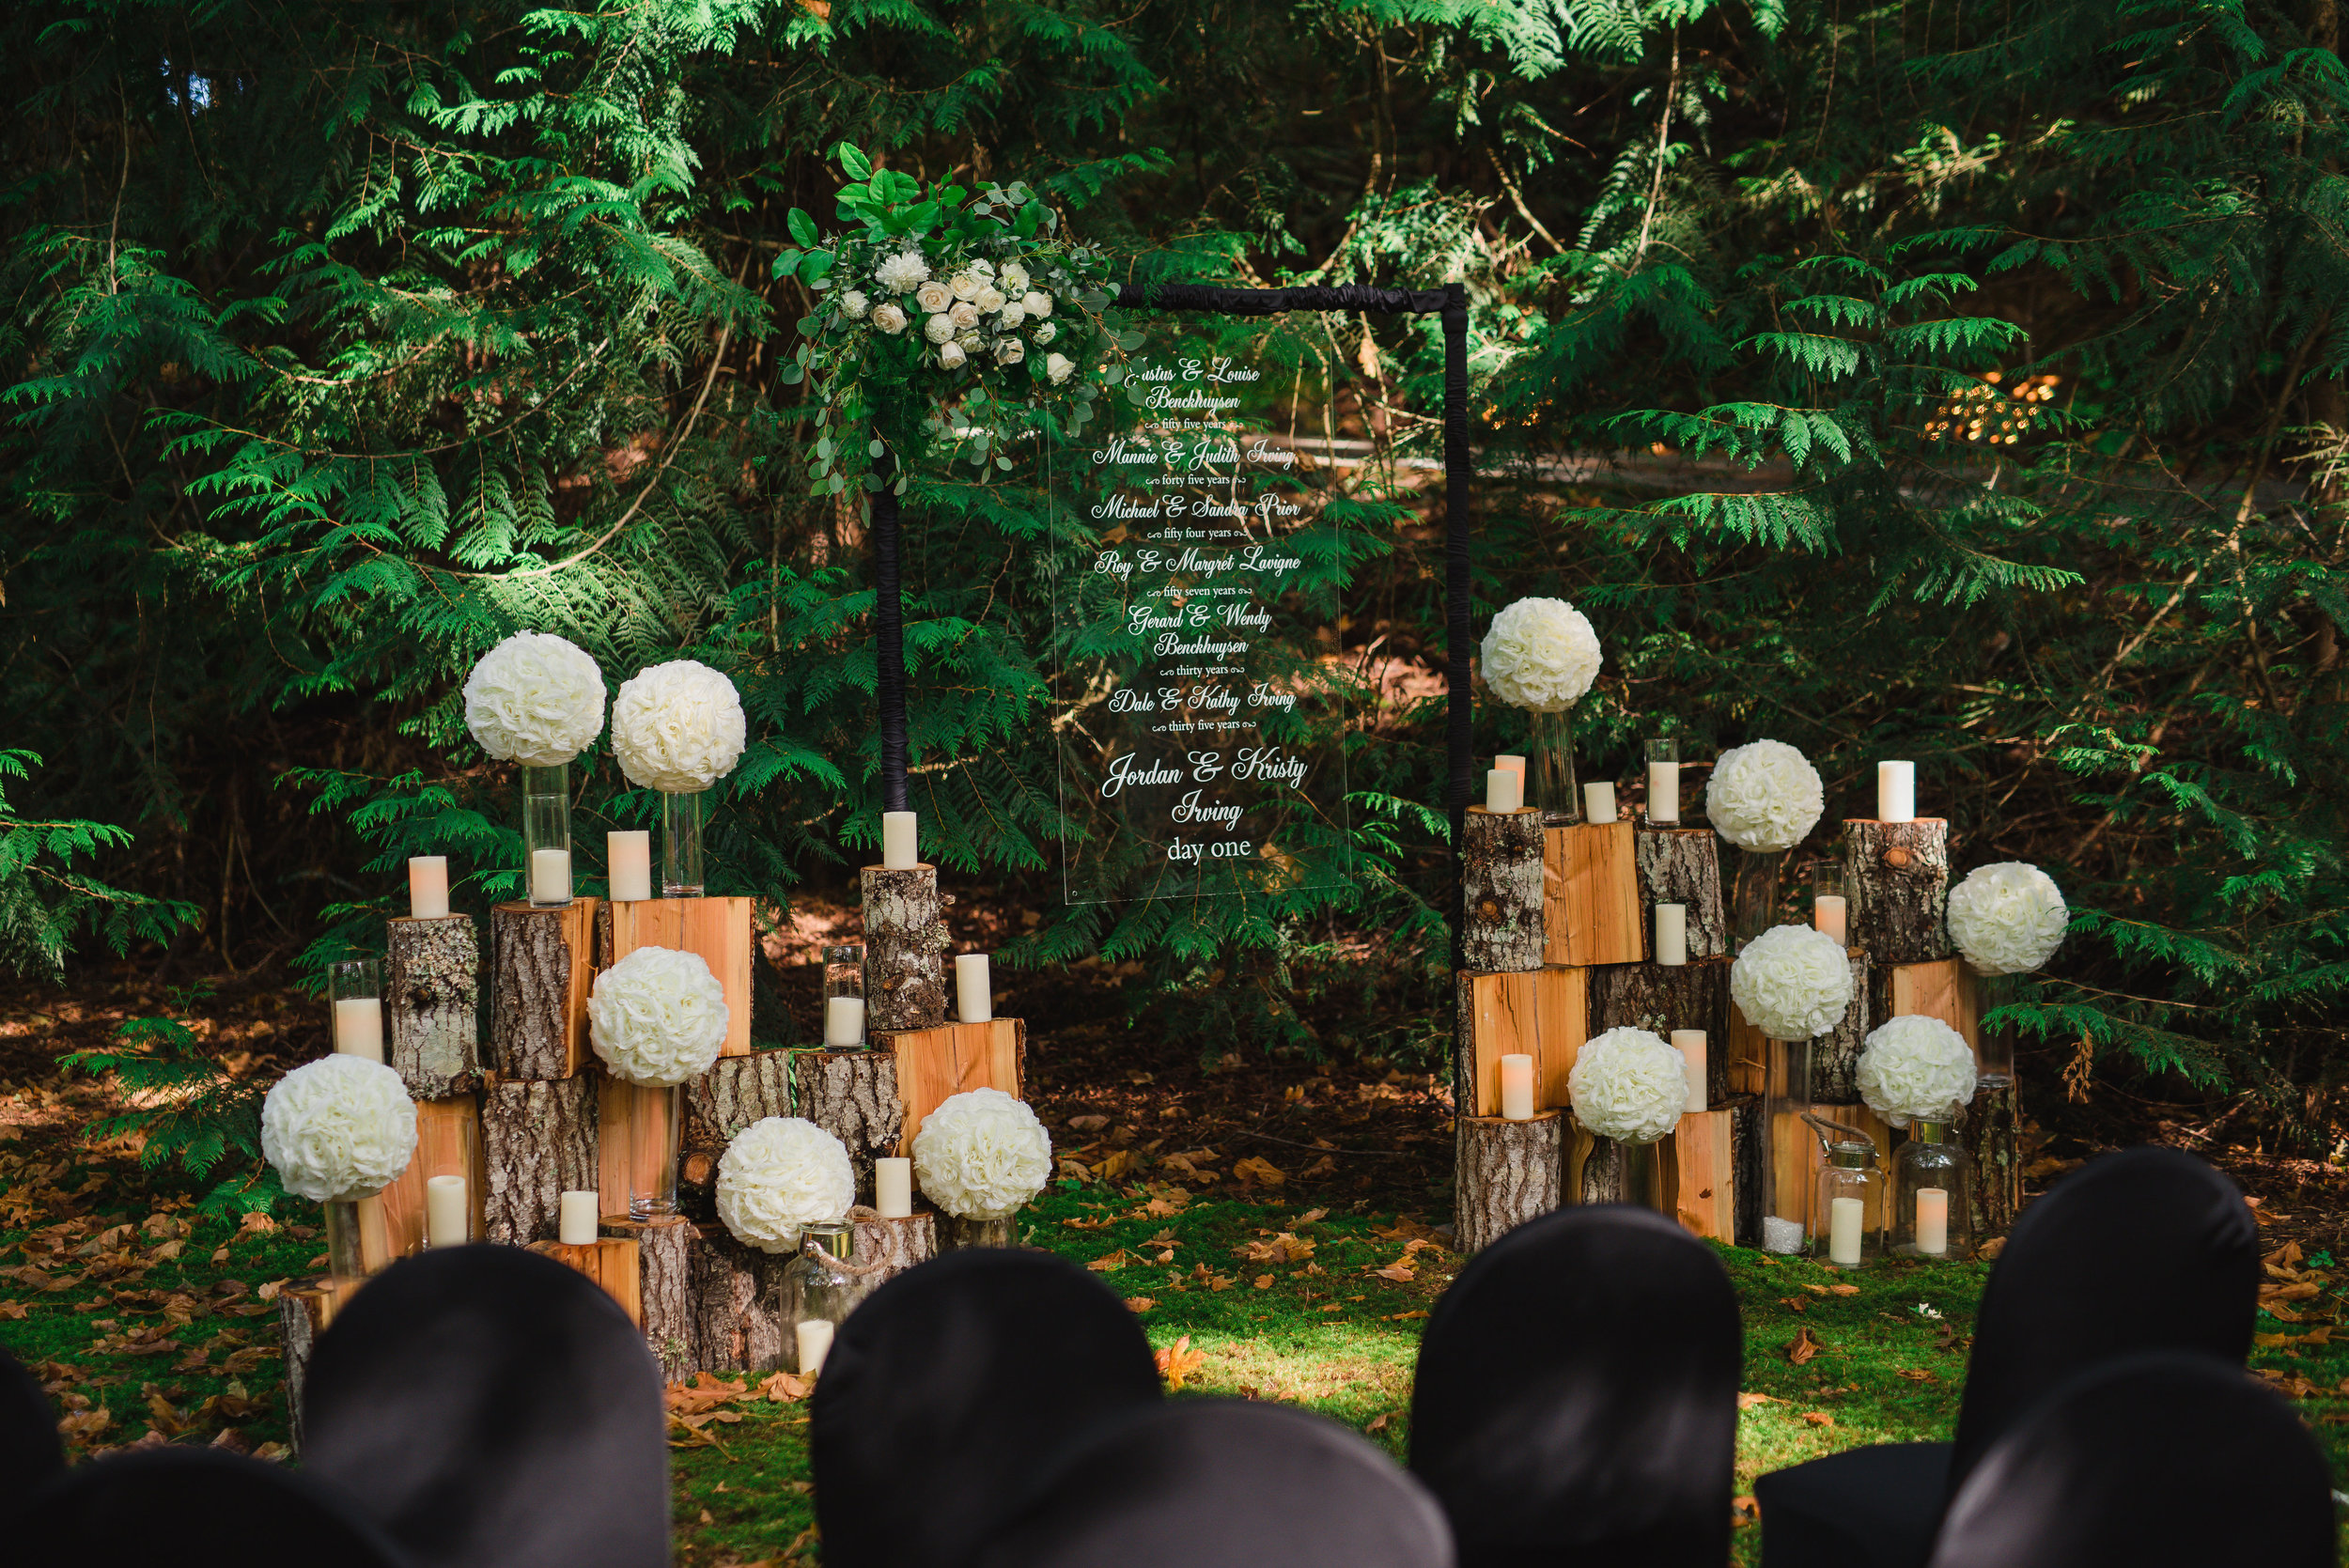 About Us - Located in Leduc, Alberta, Look Events is a company that specializes in providing boutique wedding and event planning & design services. This family-run business will customize each event per their clients' particular vision. Our experience and creativity will allow you to have your dream wedding, private function or corporate event without the anxiety!